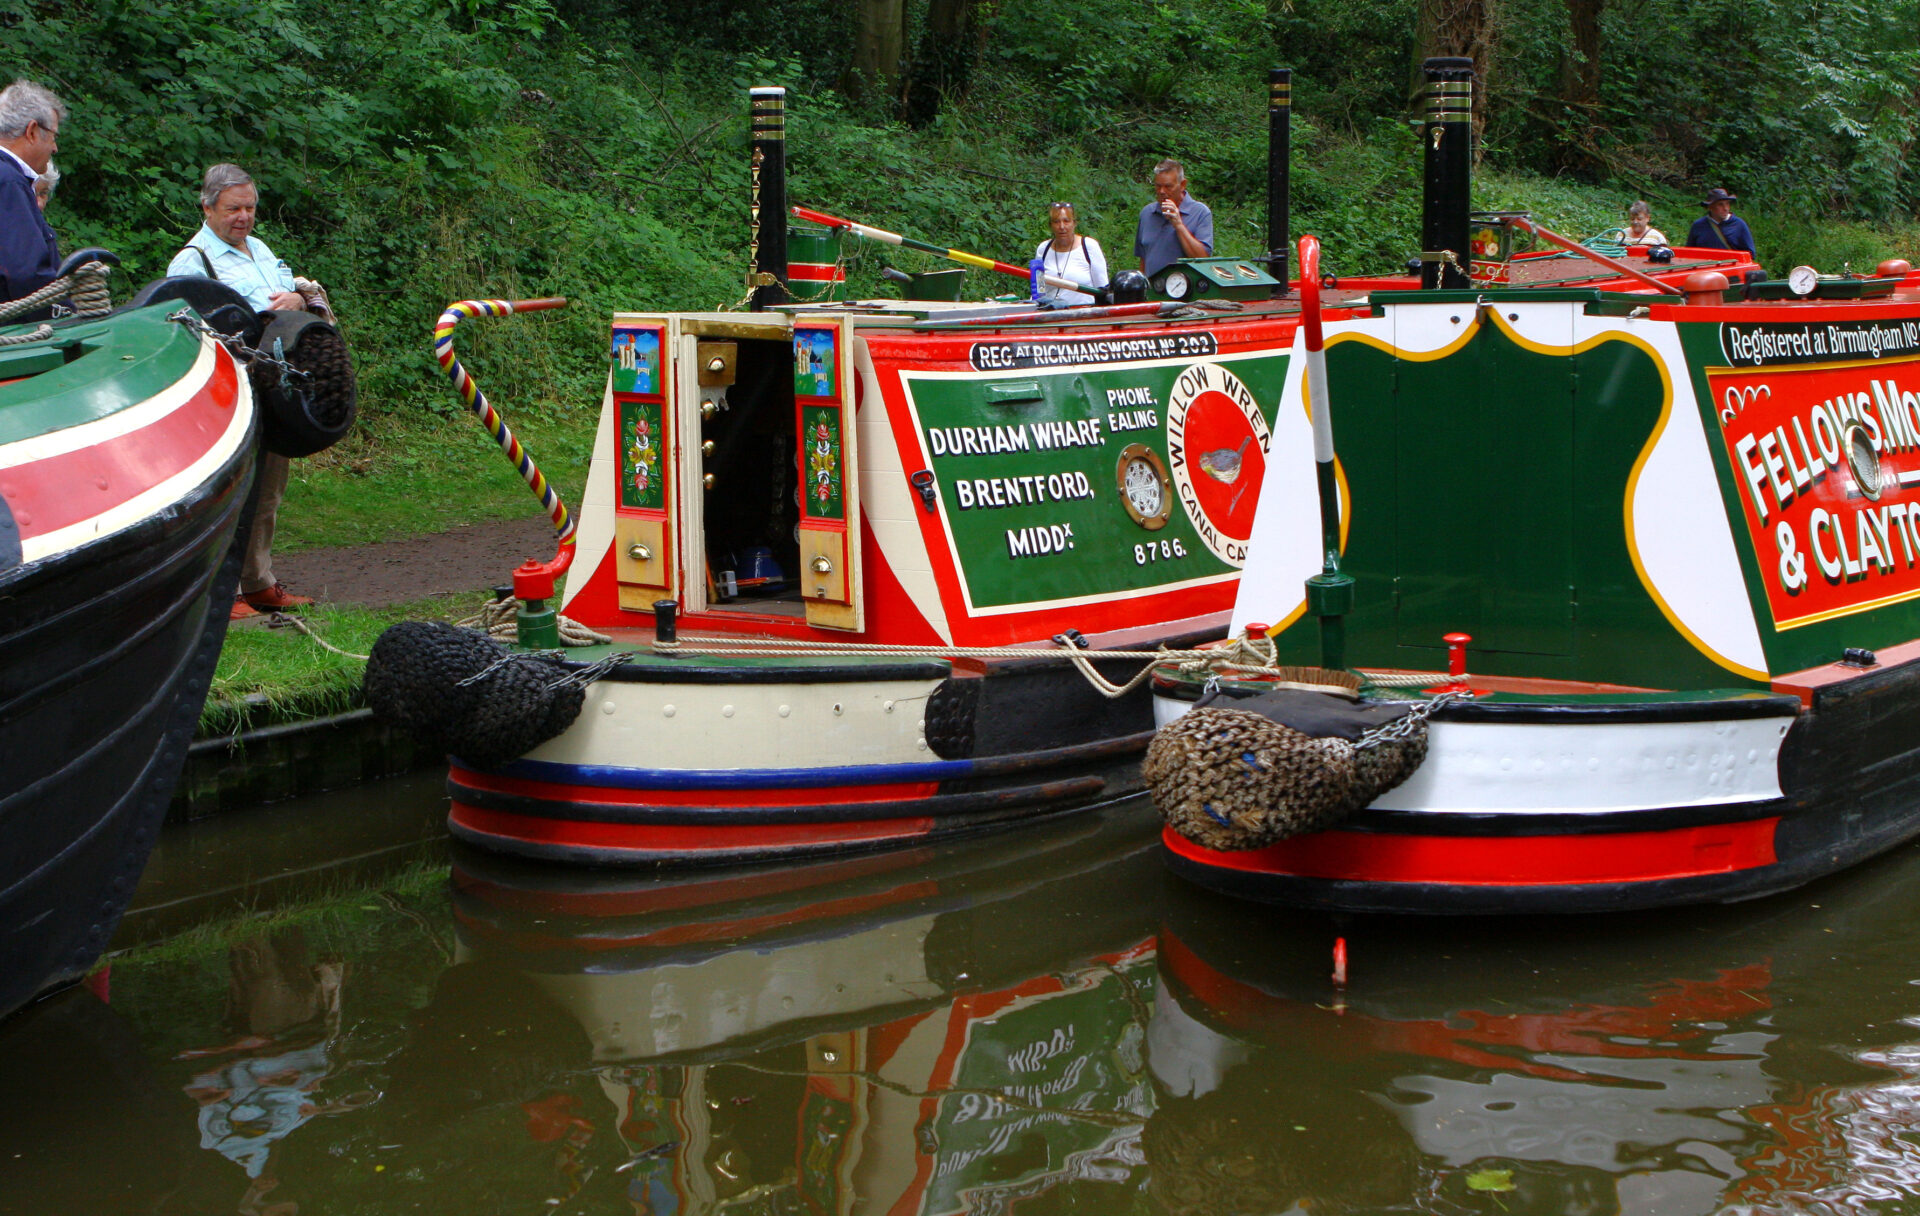 Gnosall 2019 I think. Lots of traditional boats on show. A great family day out.